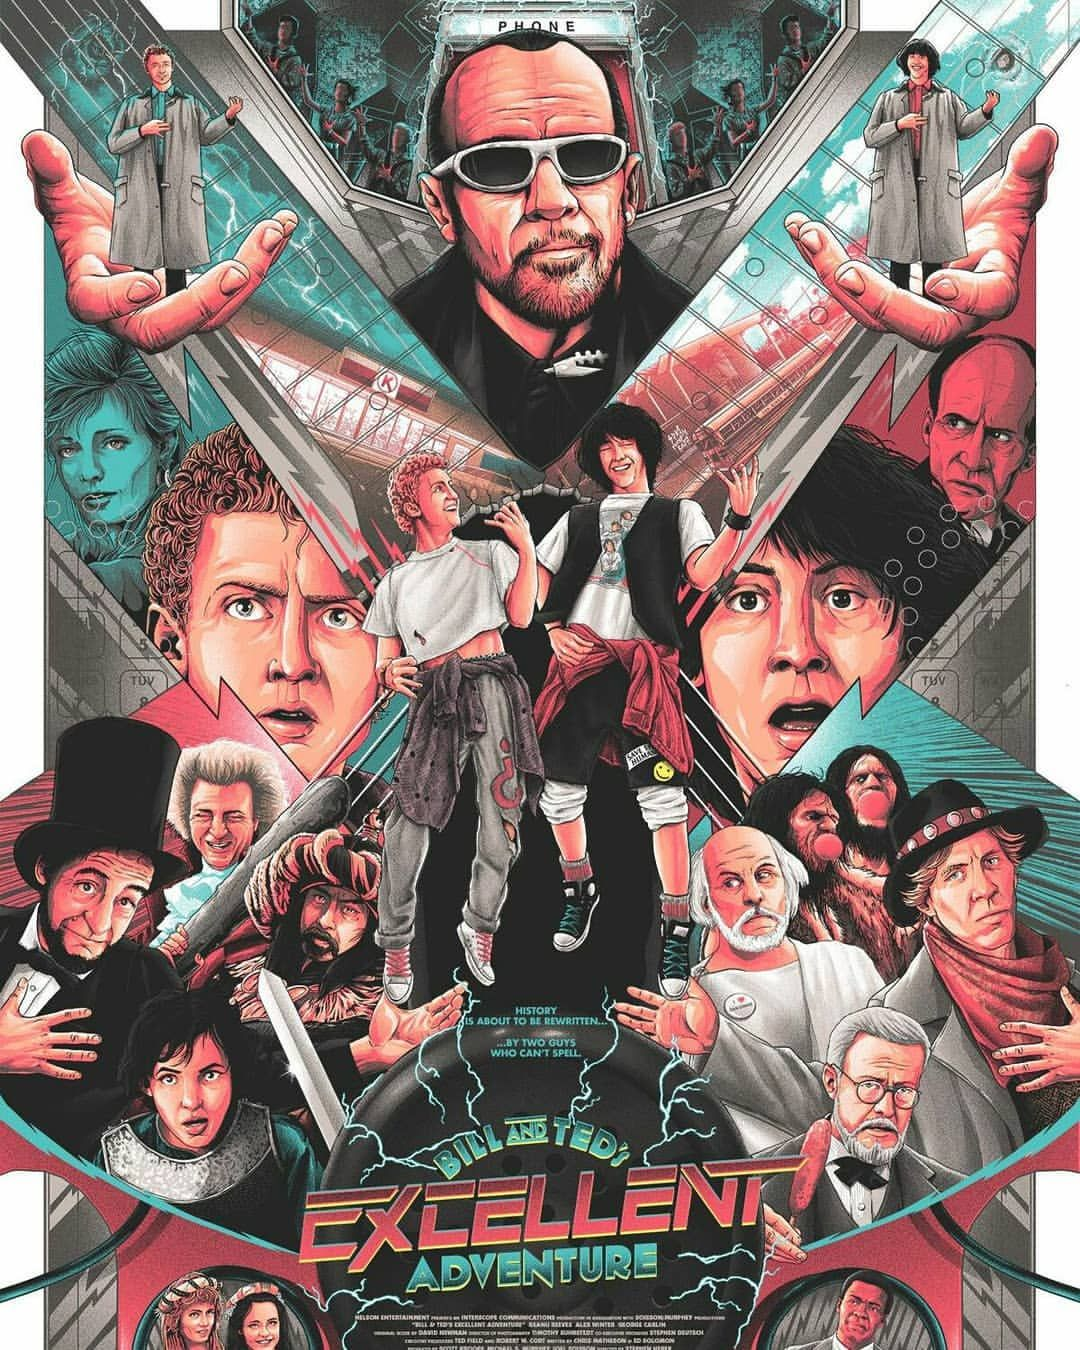 Two Heads Are Better Than One Happy Big 30th Anniversary Bill And Ted Amazing Artwork By Matt Ryan And You Ca Adventure Movie Movie Posters Poster Art